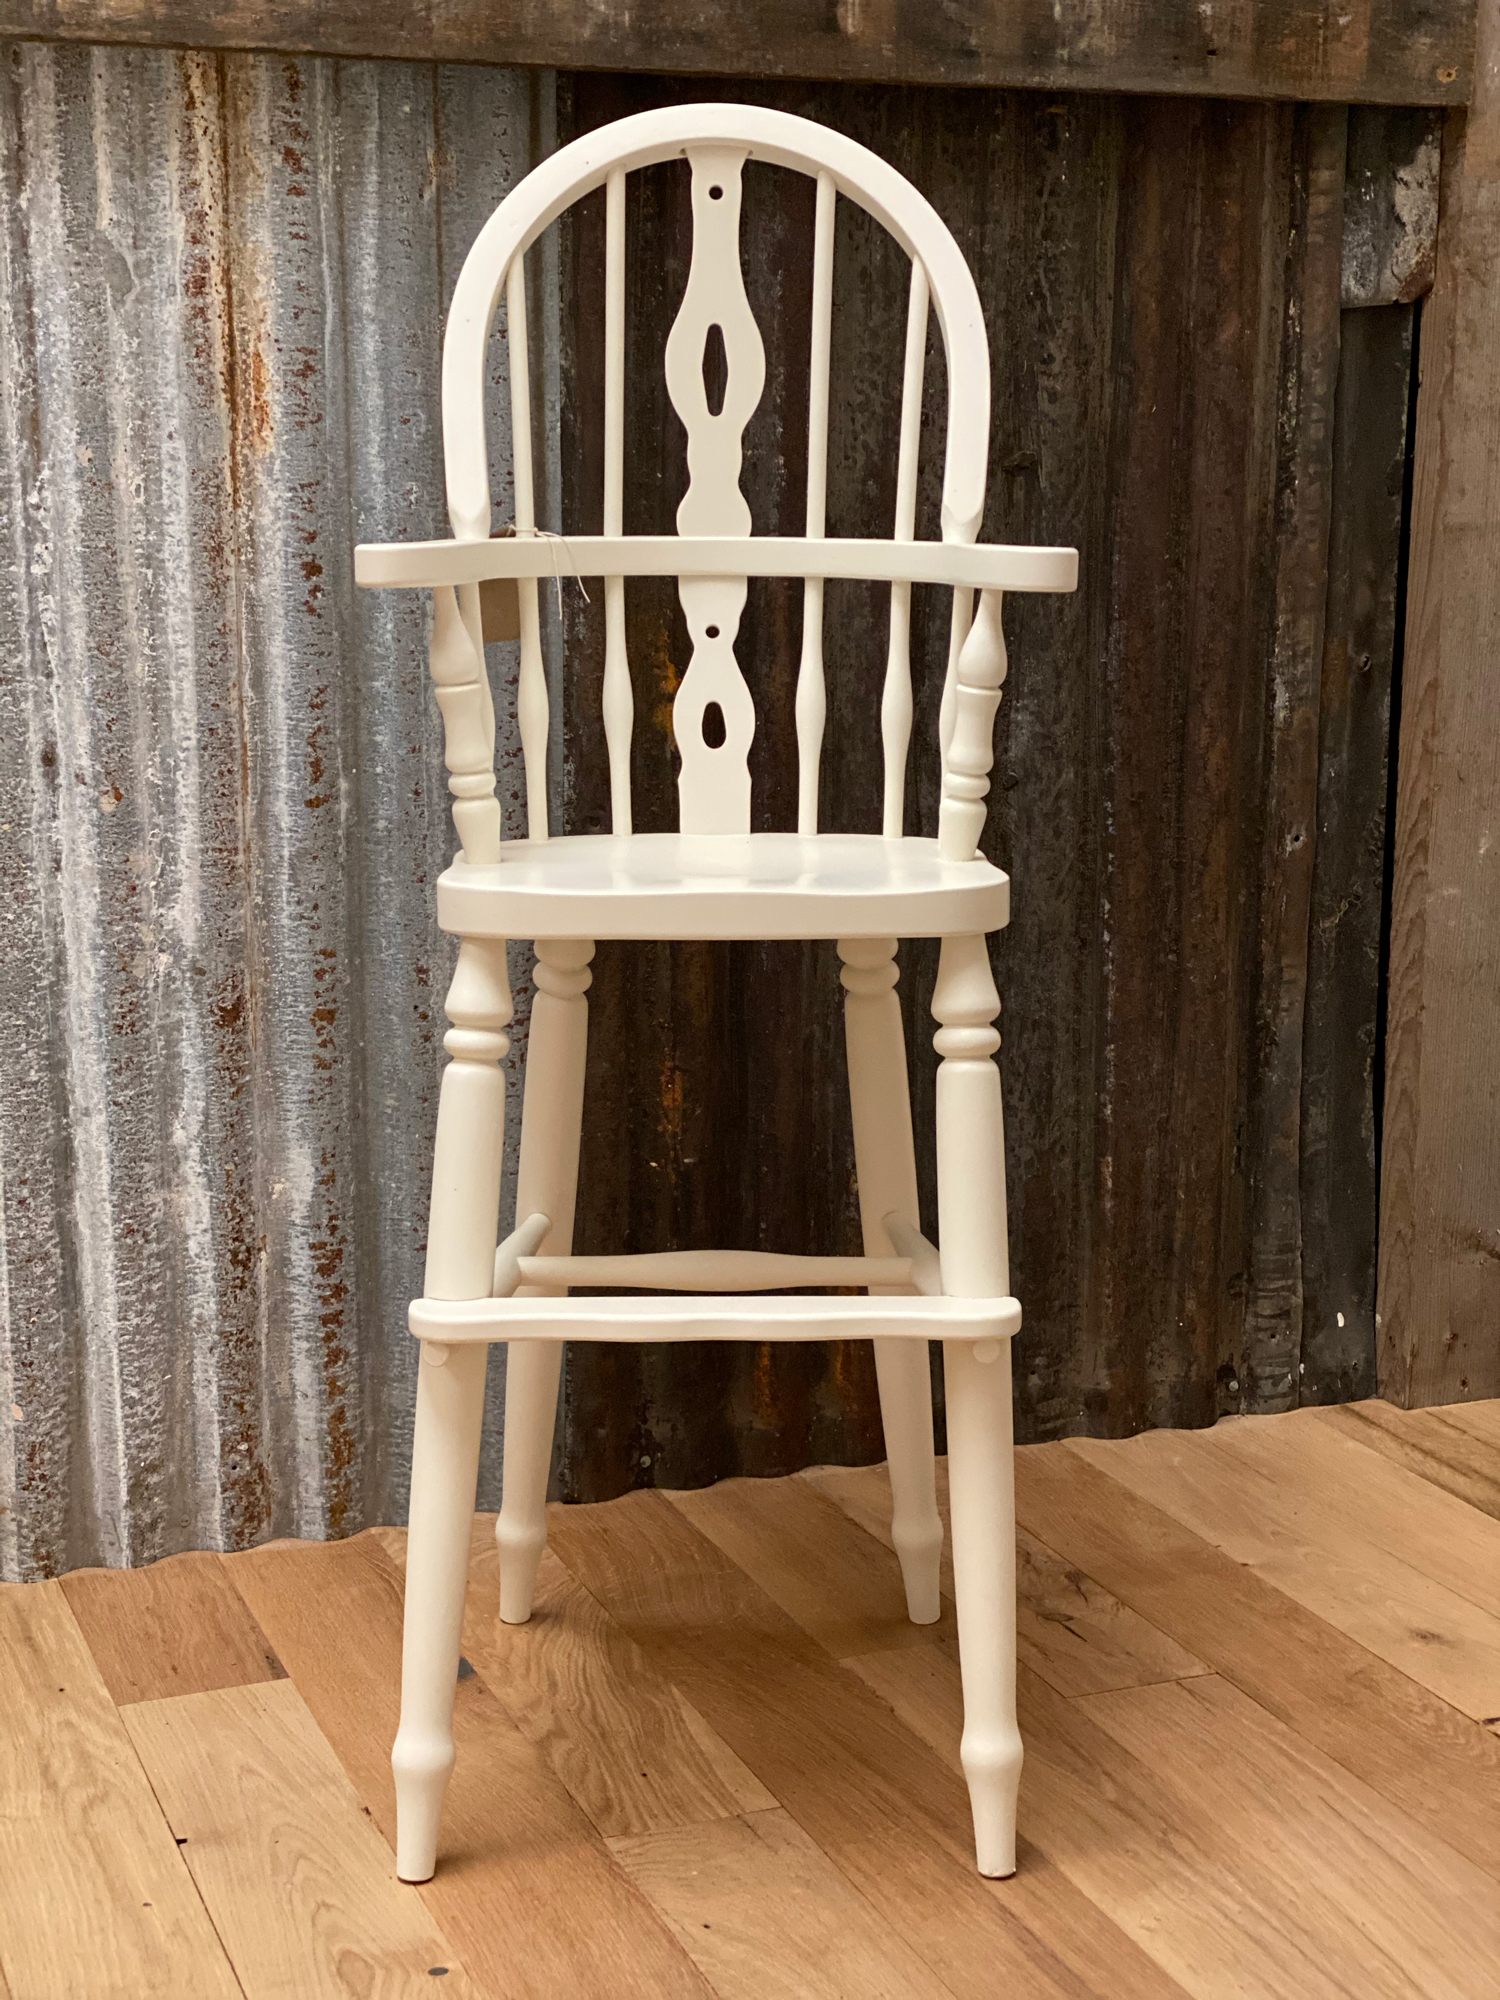 childs windsor high chair painted white